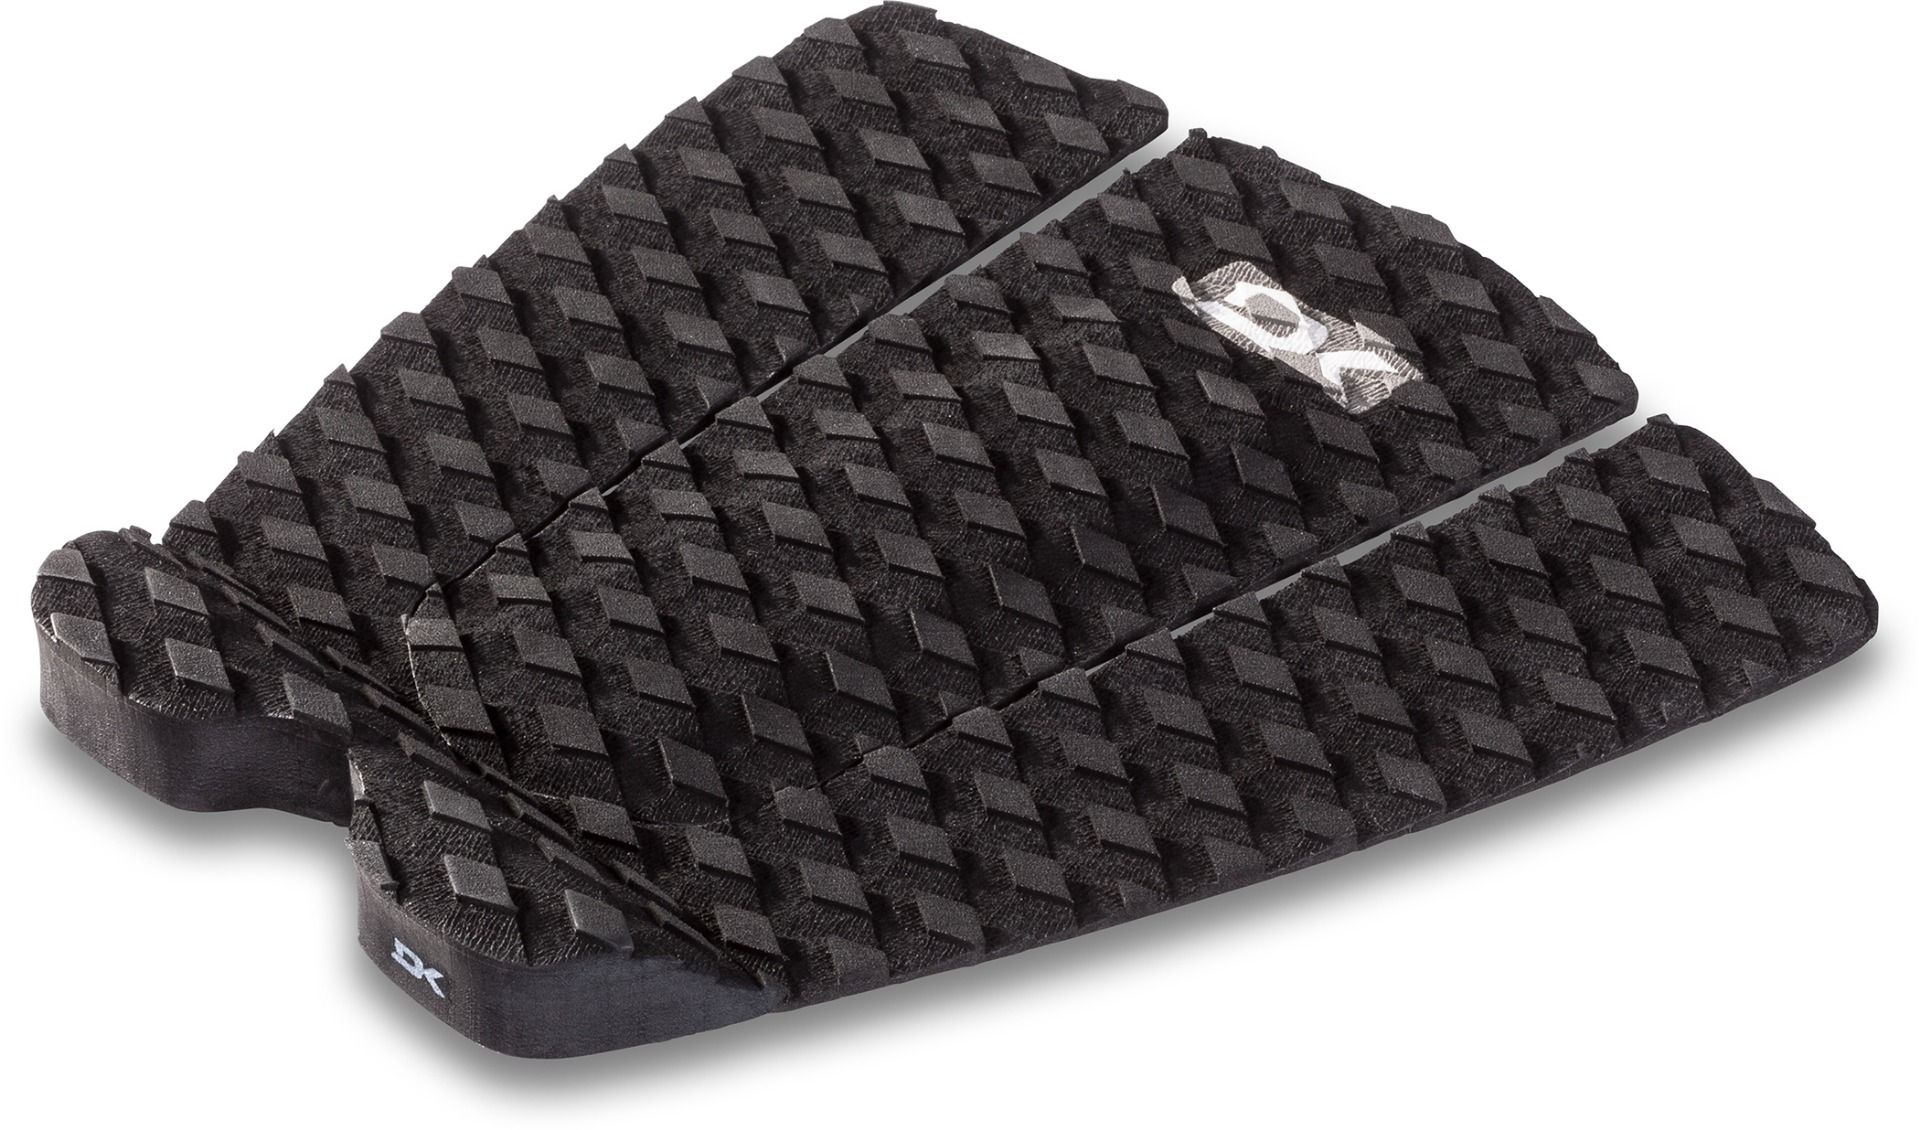 Black Dakine Andy Irons Pro Surf Traction Pad